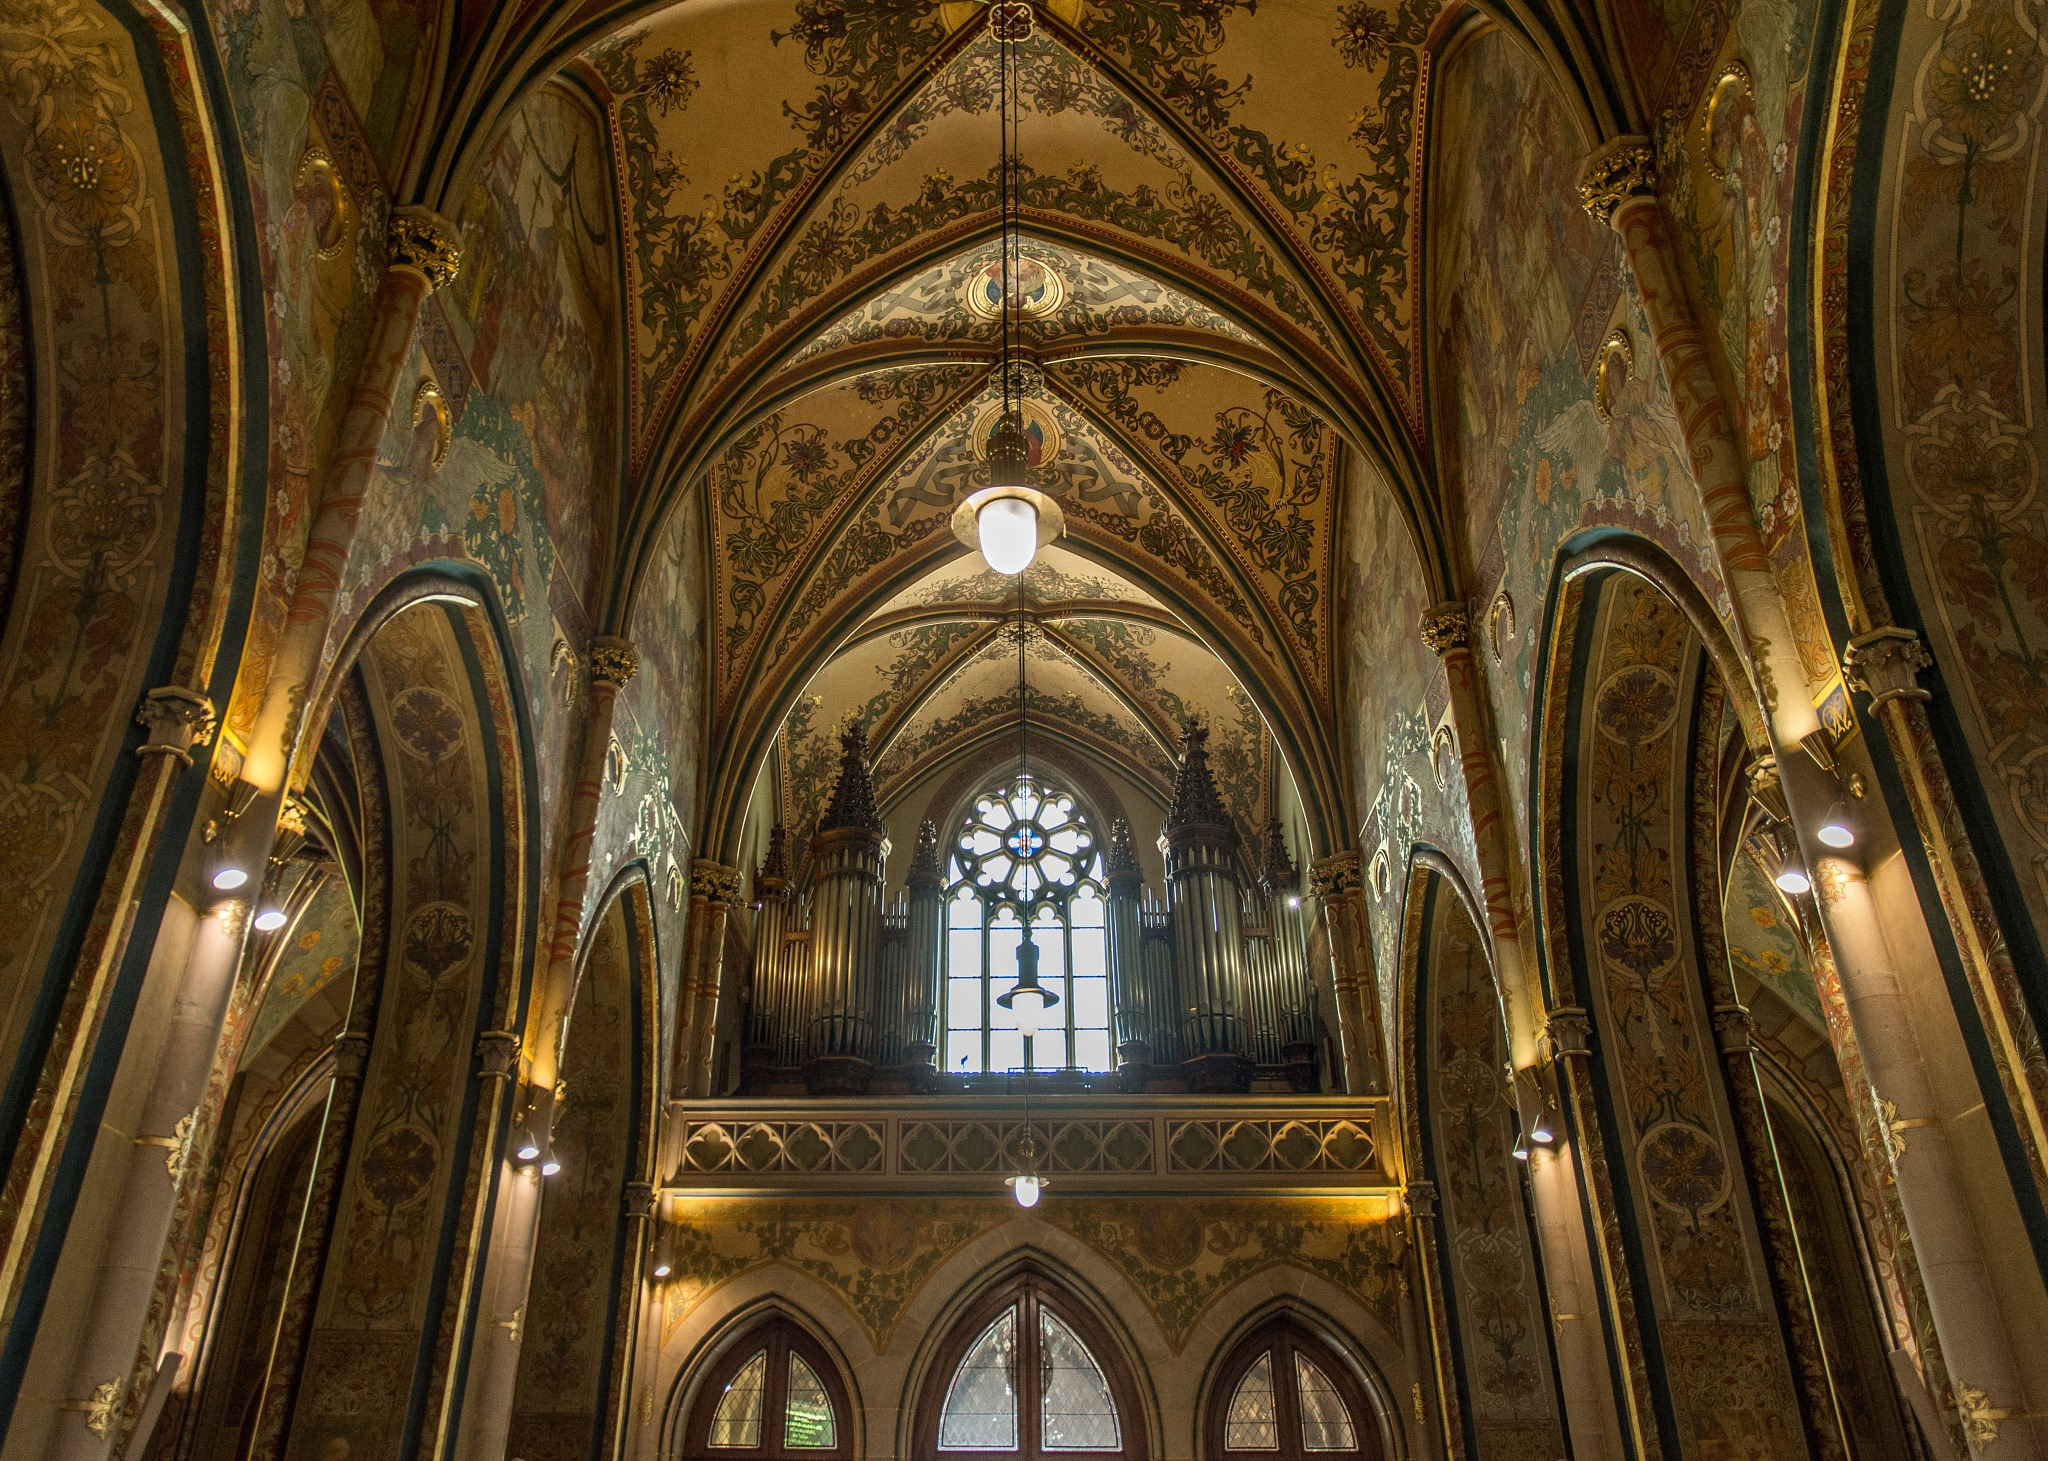 The organ in the cathedral of Peter and Paul (Prague) by Anna Pronenko